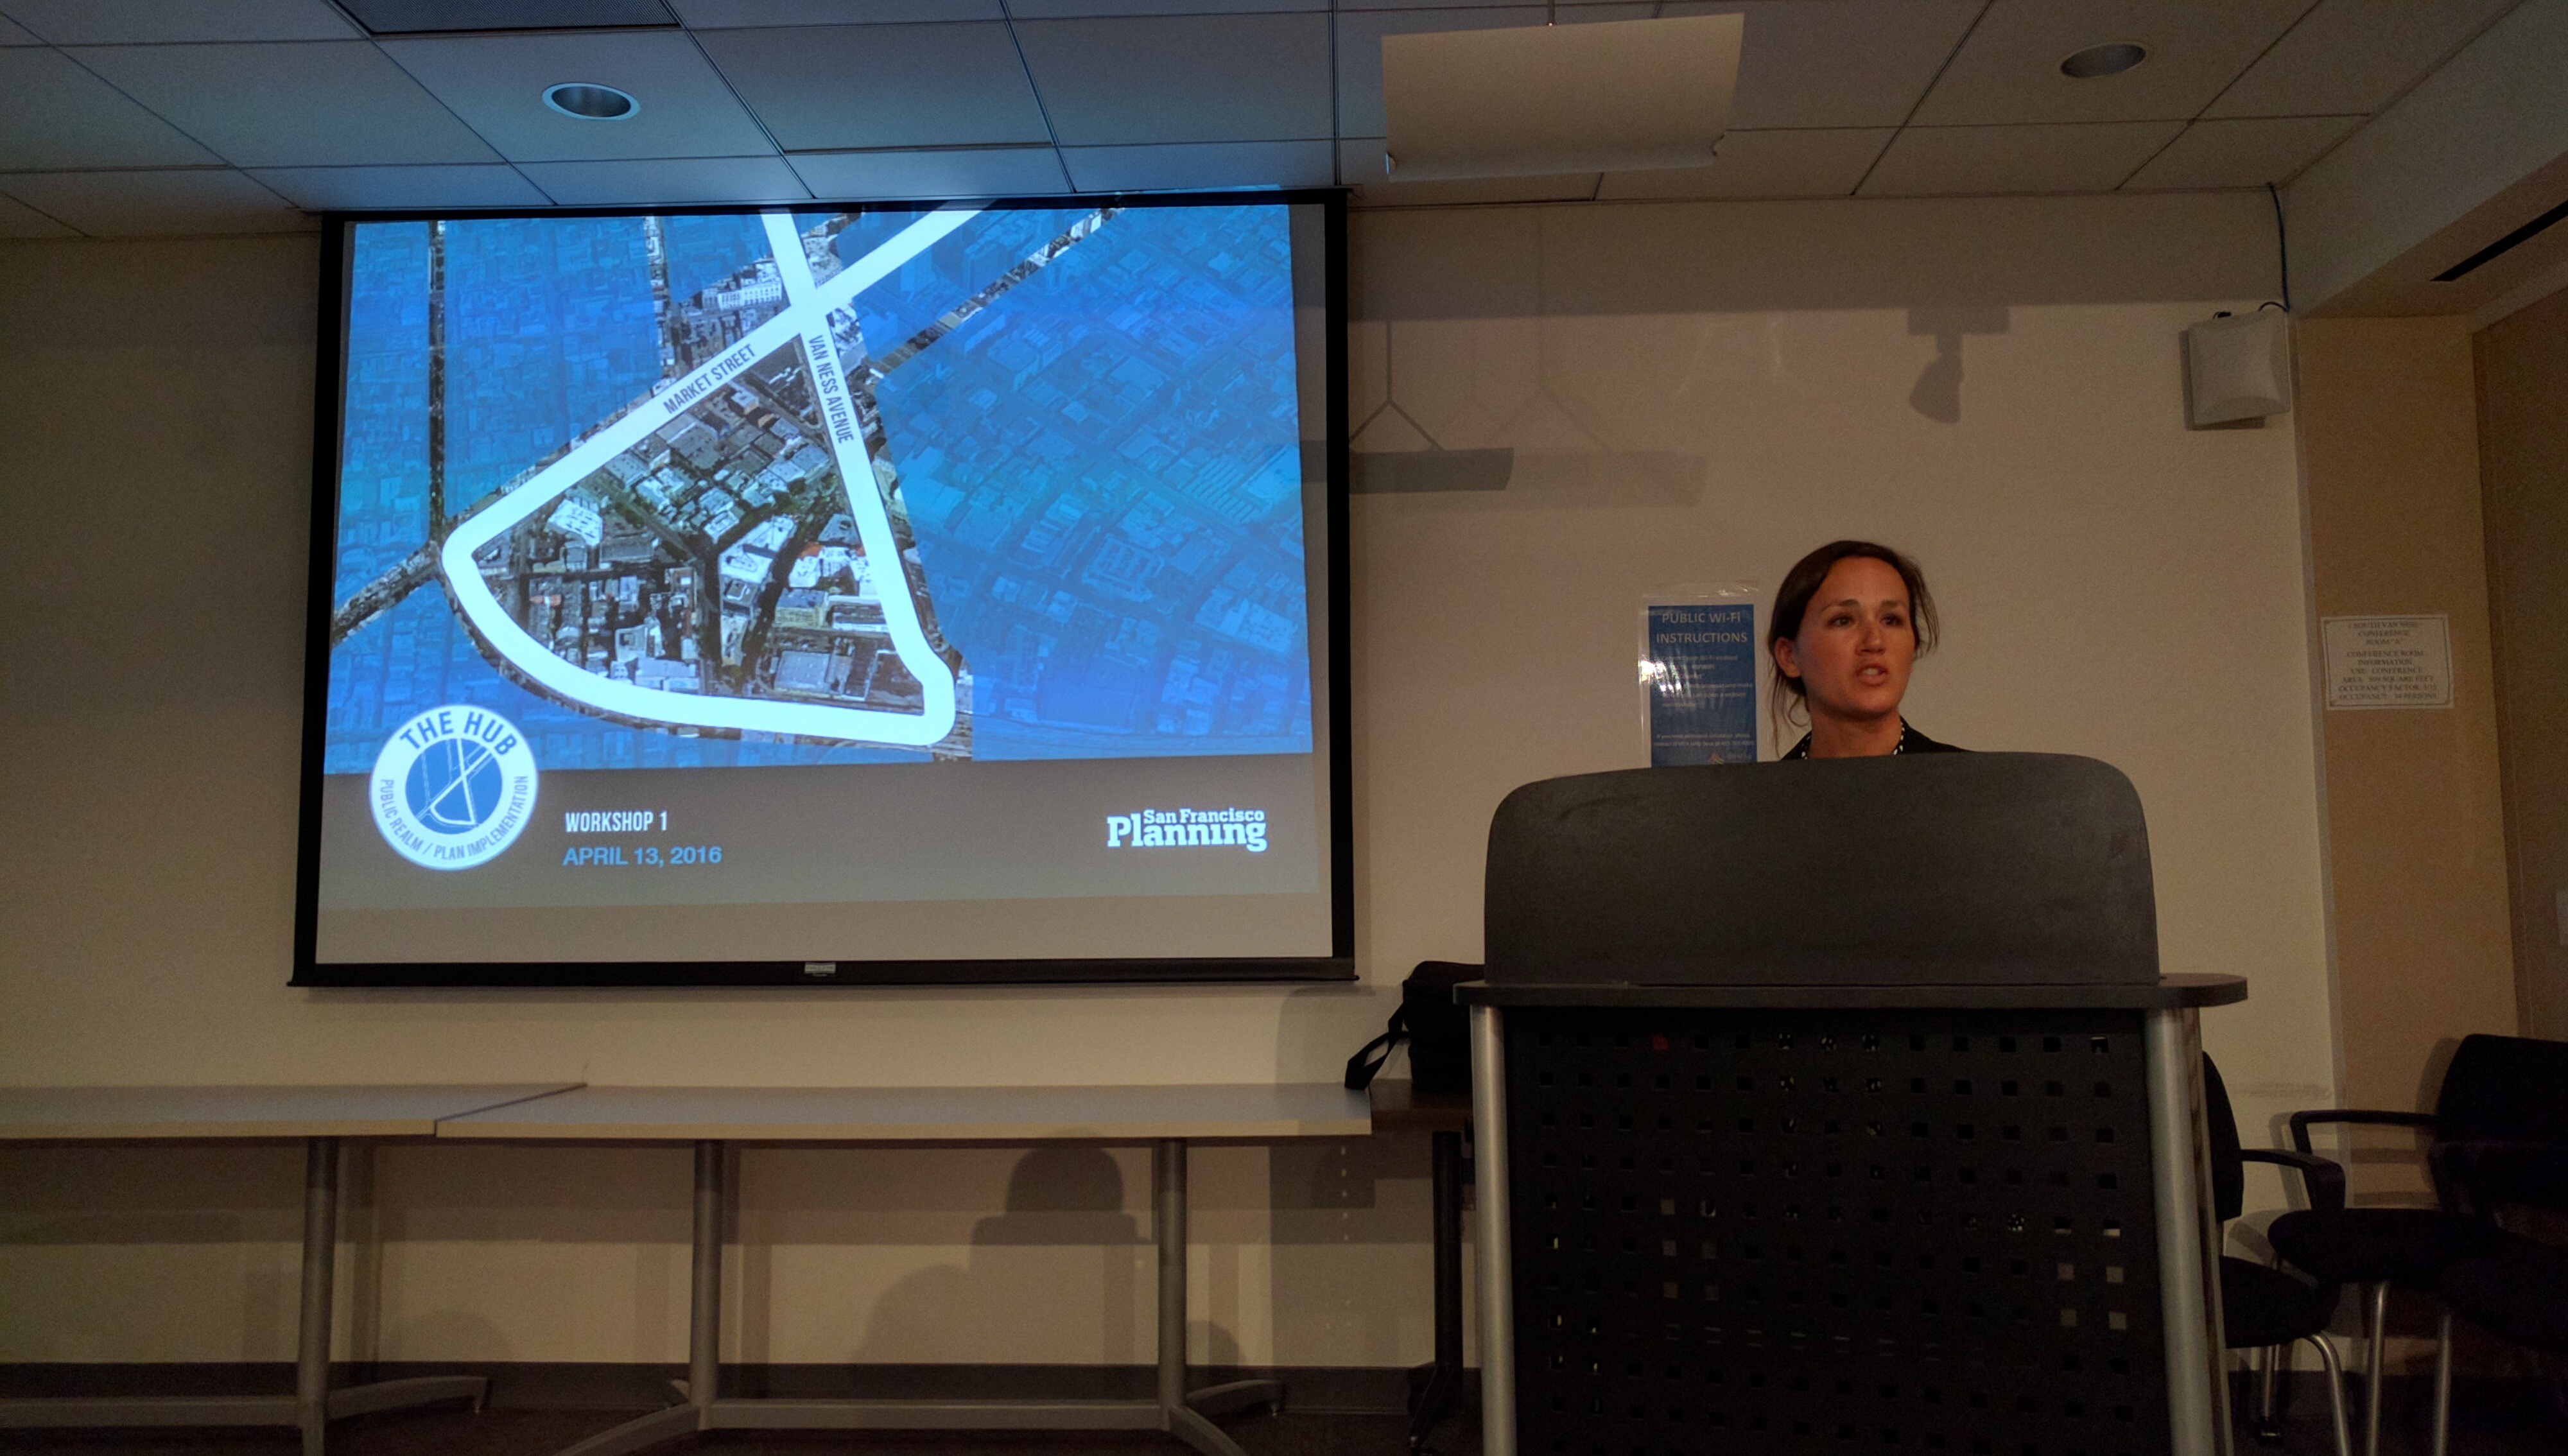 Lily Langlois, SF Planner, brings a packed audience through the city plans. Photo: Streetsblog